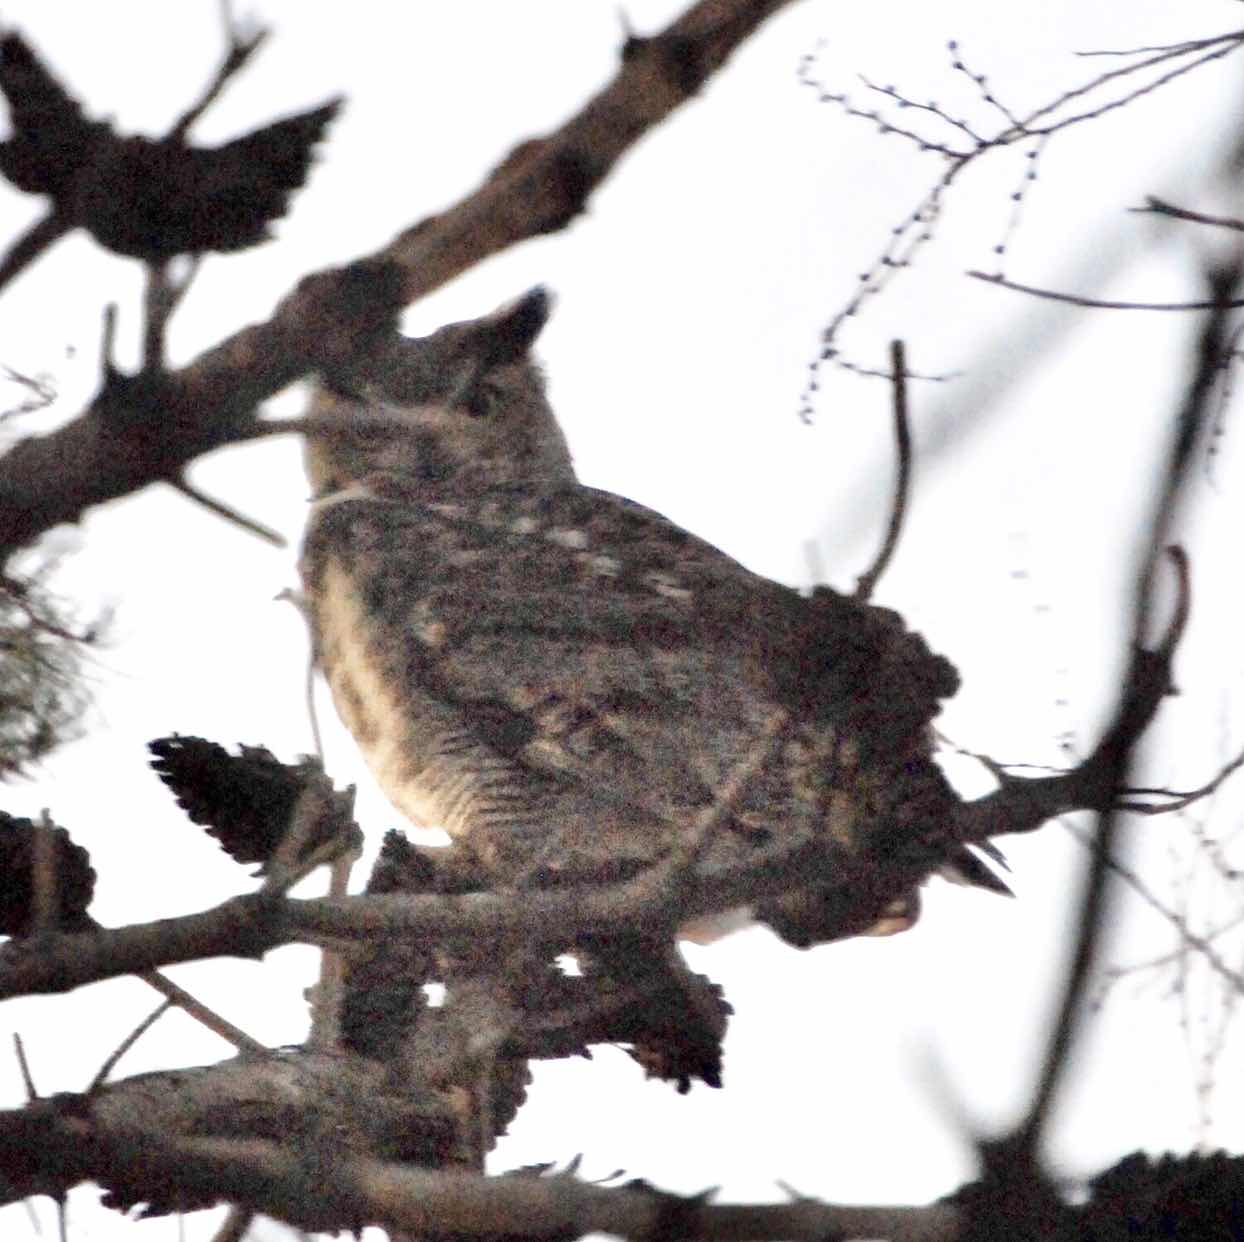 Male Great Horned Owl, El Paso Texas